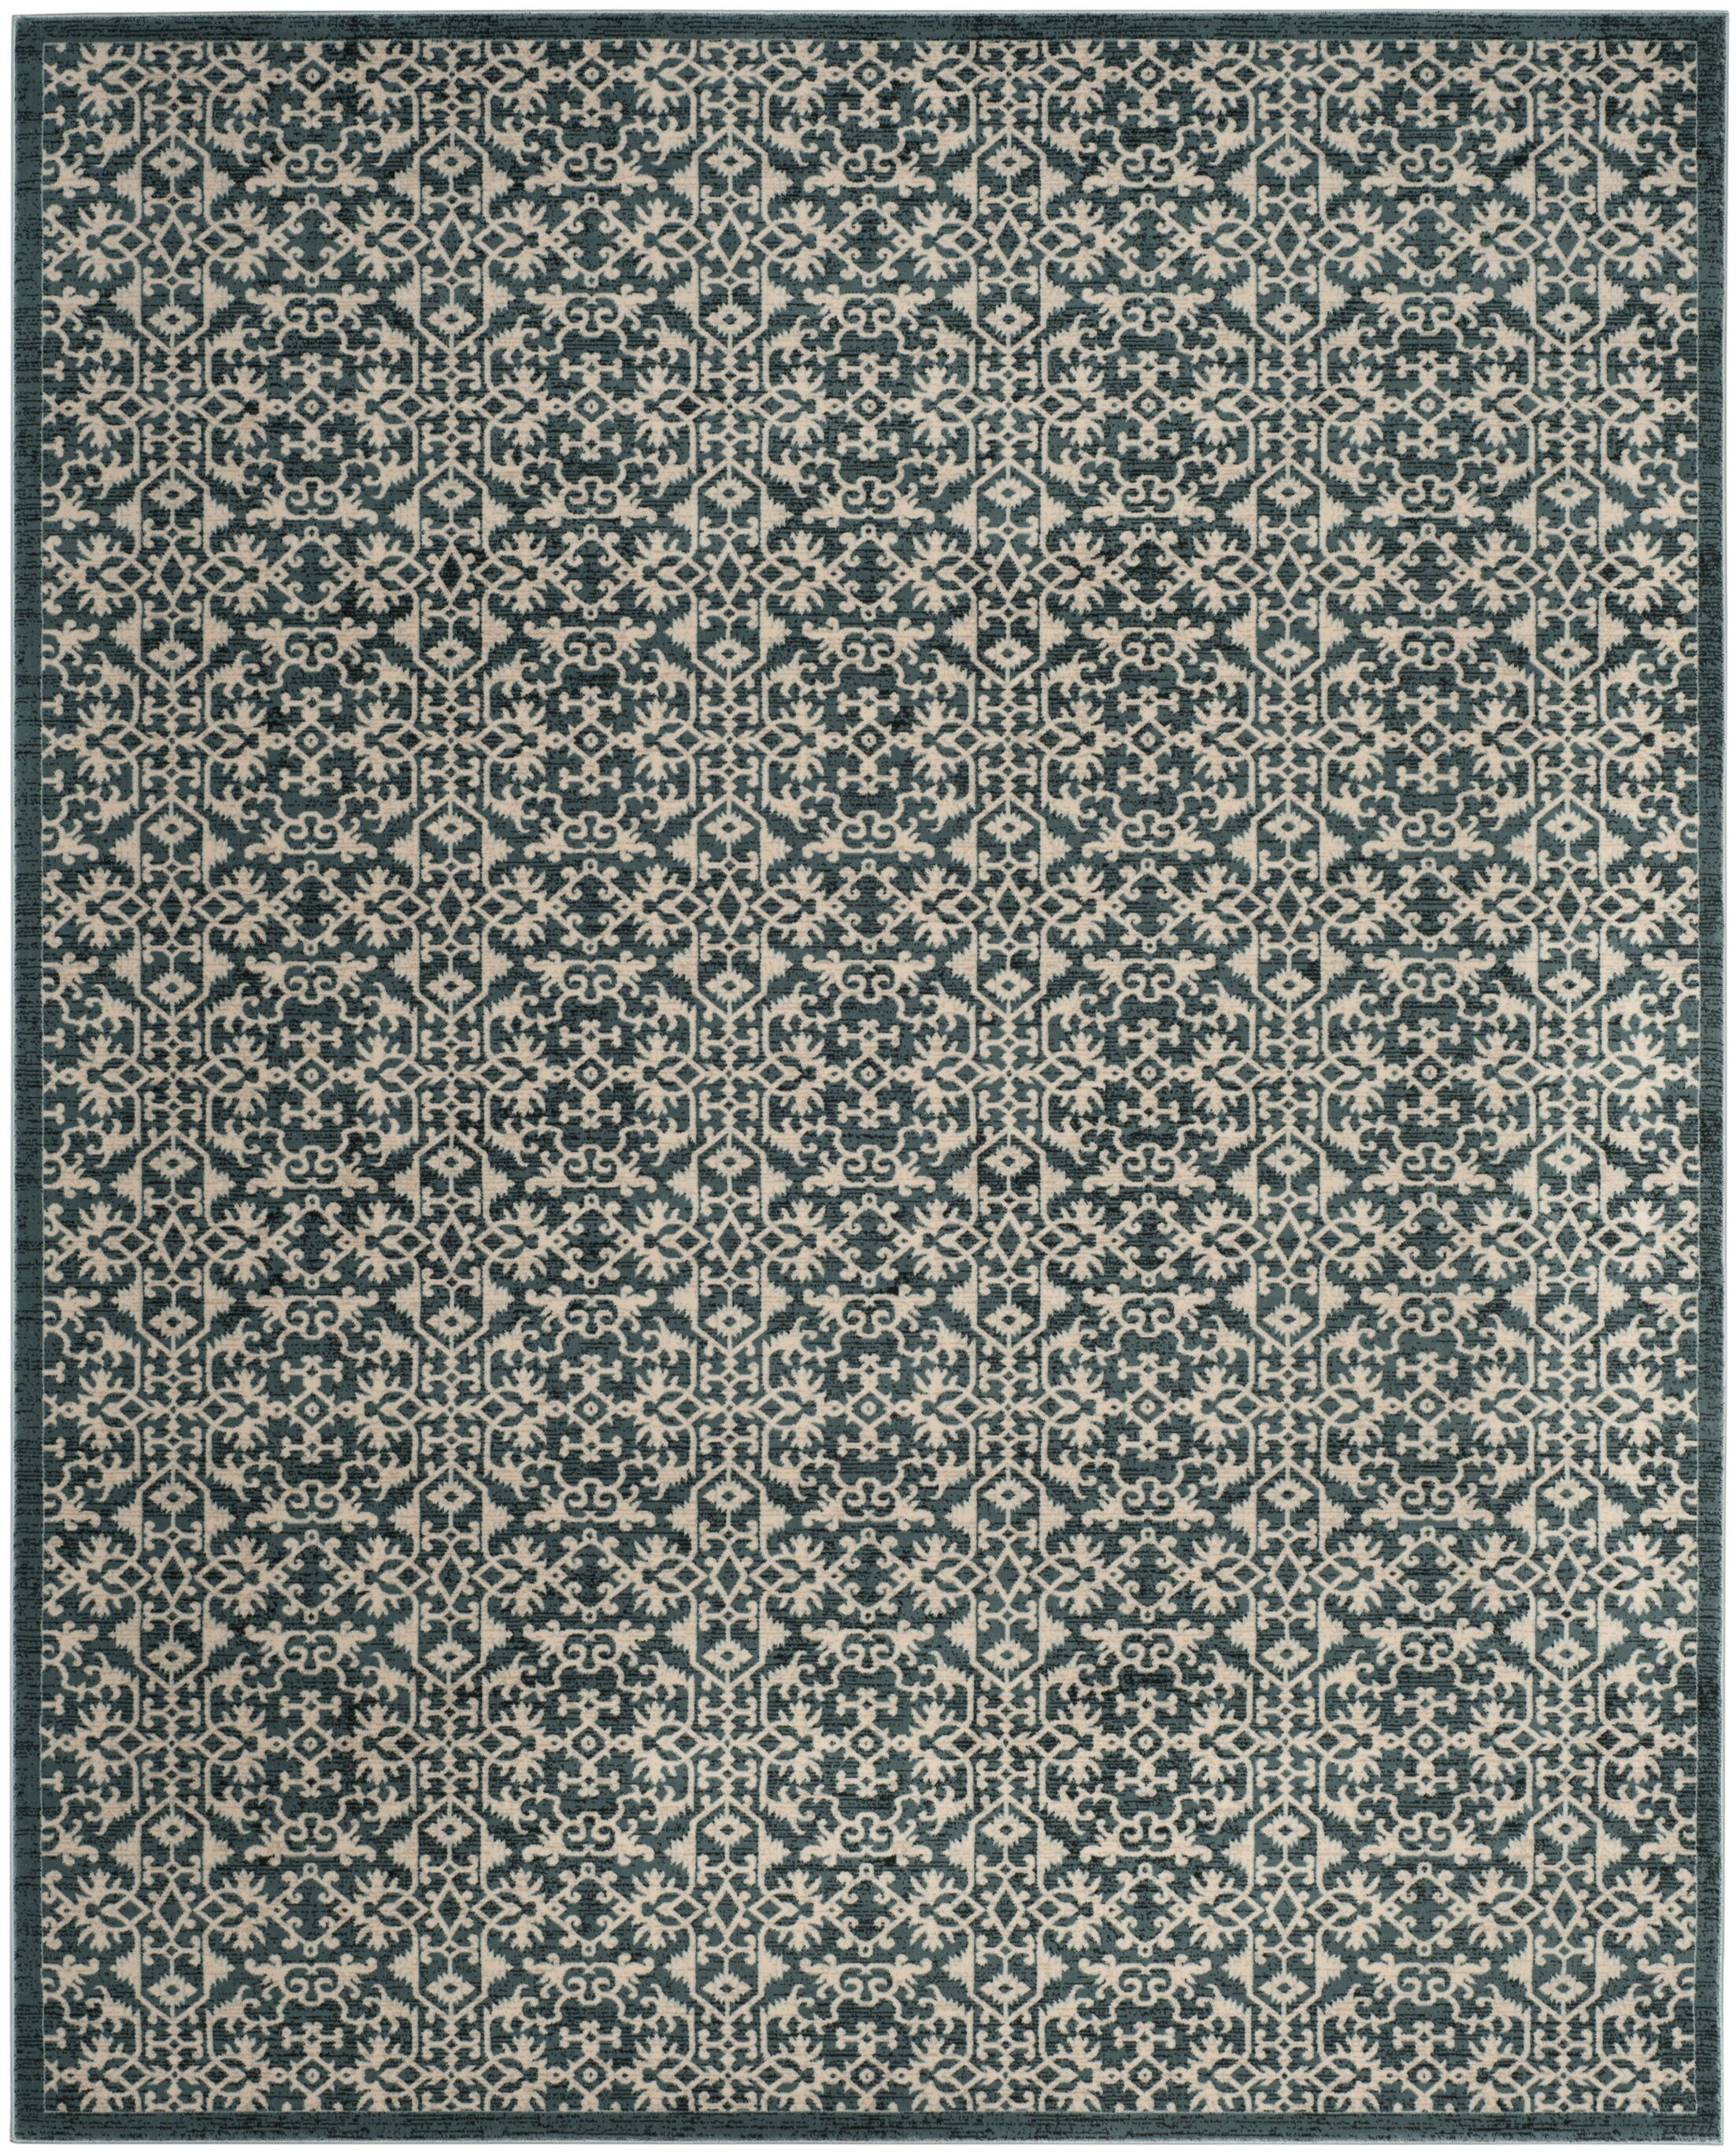 McClusky Turquoise/Cream Area Rug Rug Size: Rectangle 8' x 10'